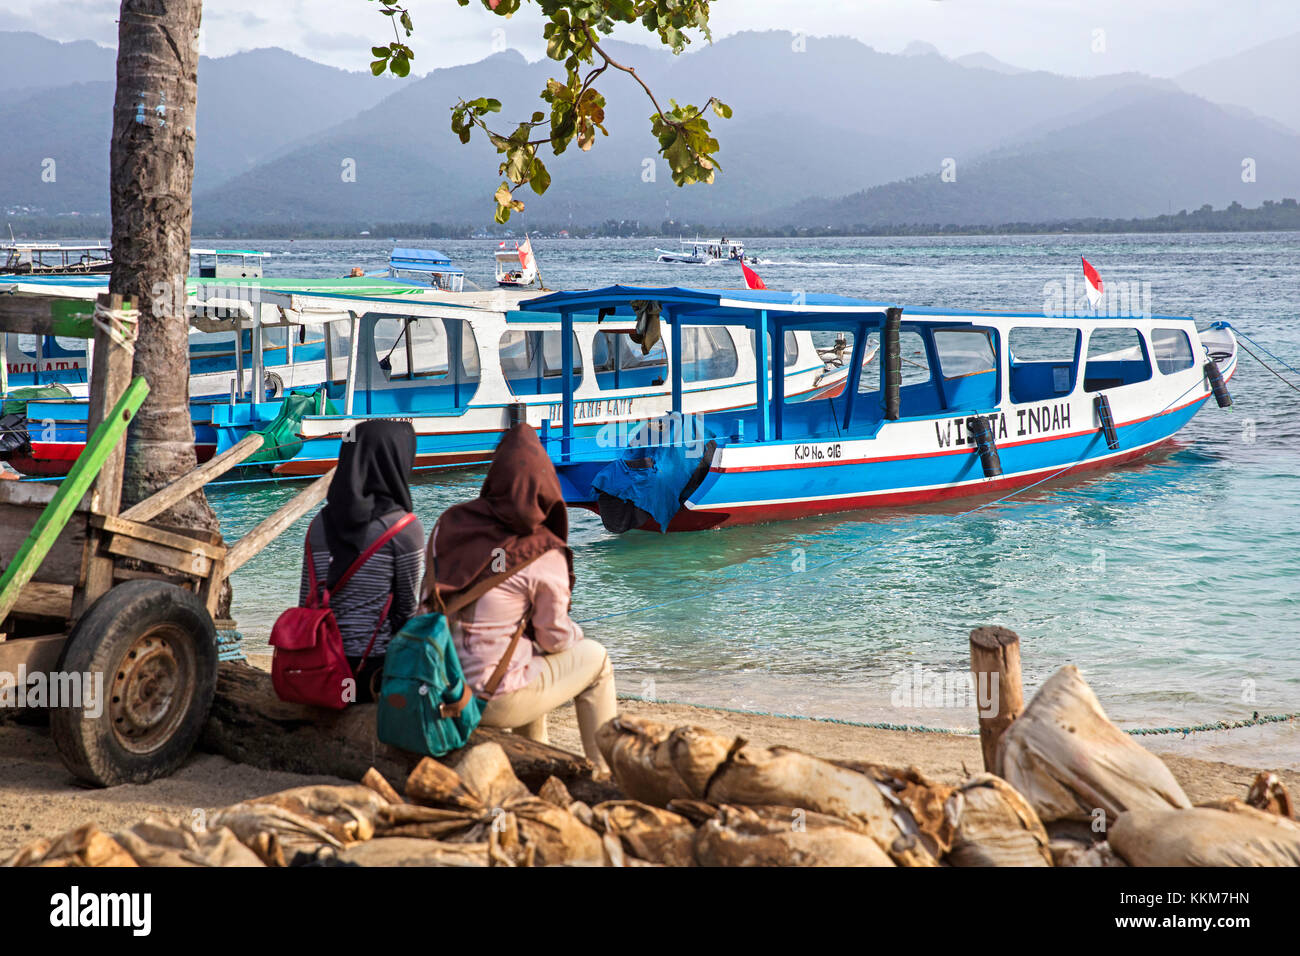 Two Indonesian women waiting for the ferry to the island Lombok at Gili Air, one of the Gili Islands in Indonesia - Stock Image